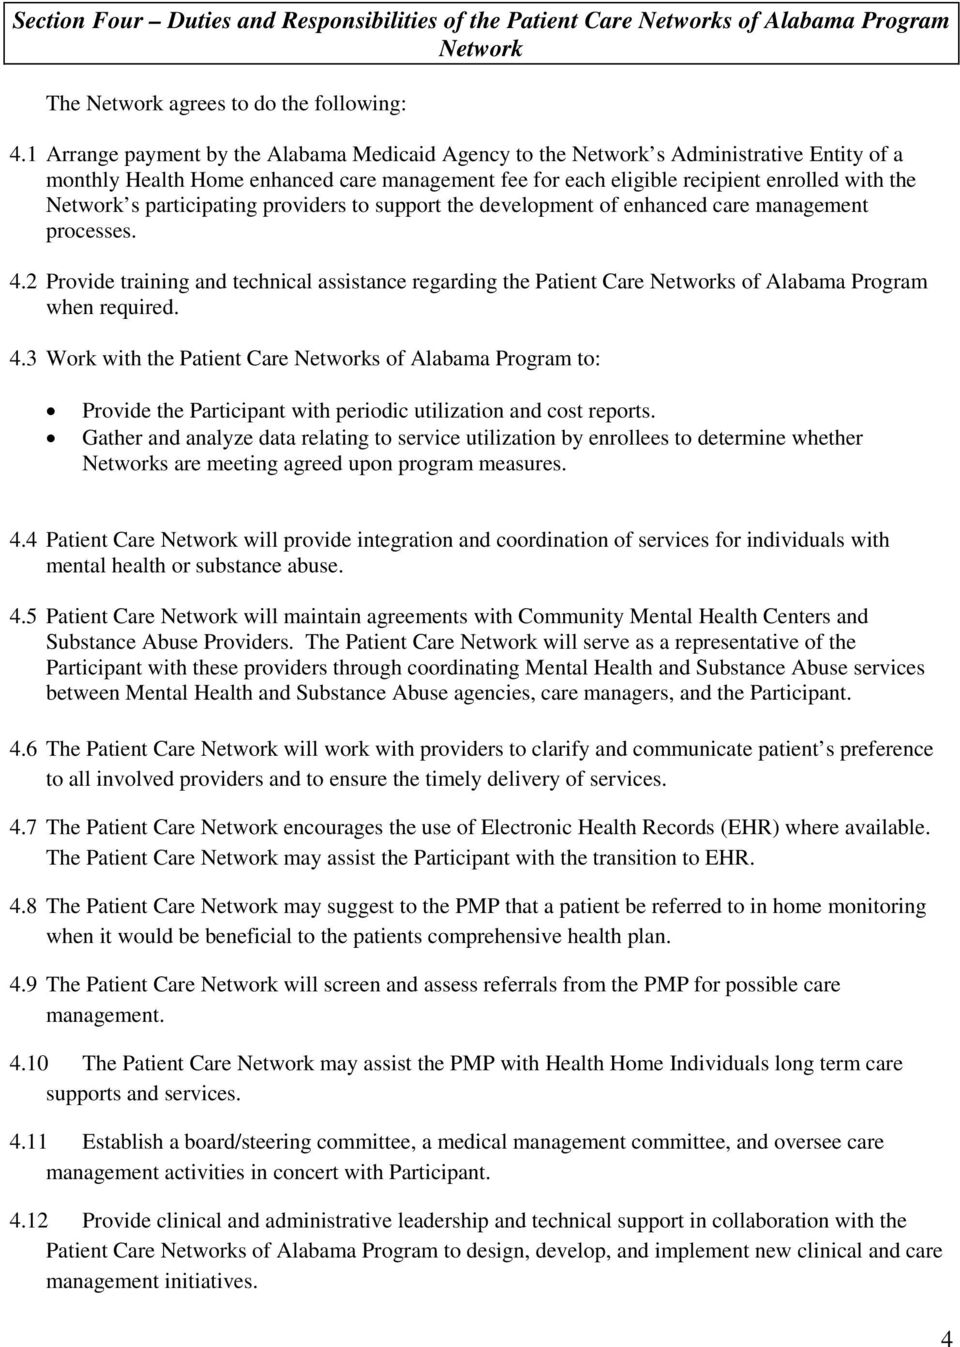 participating providers to support the development of enhanced care management processes. 4.